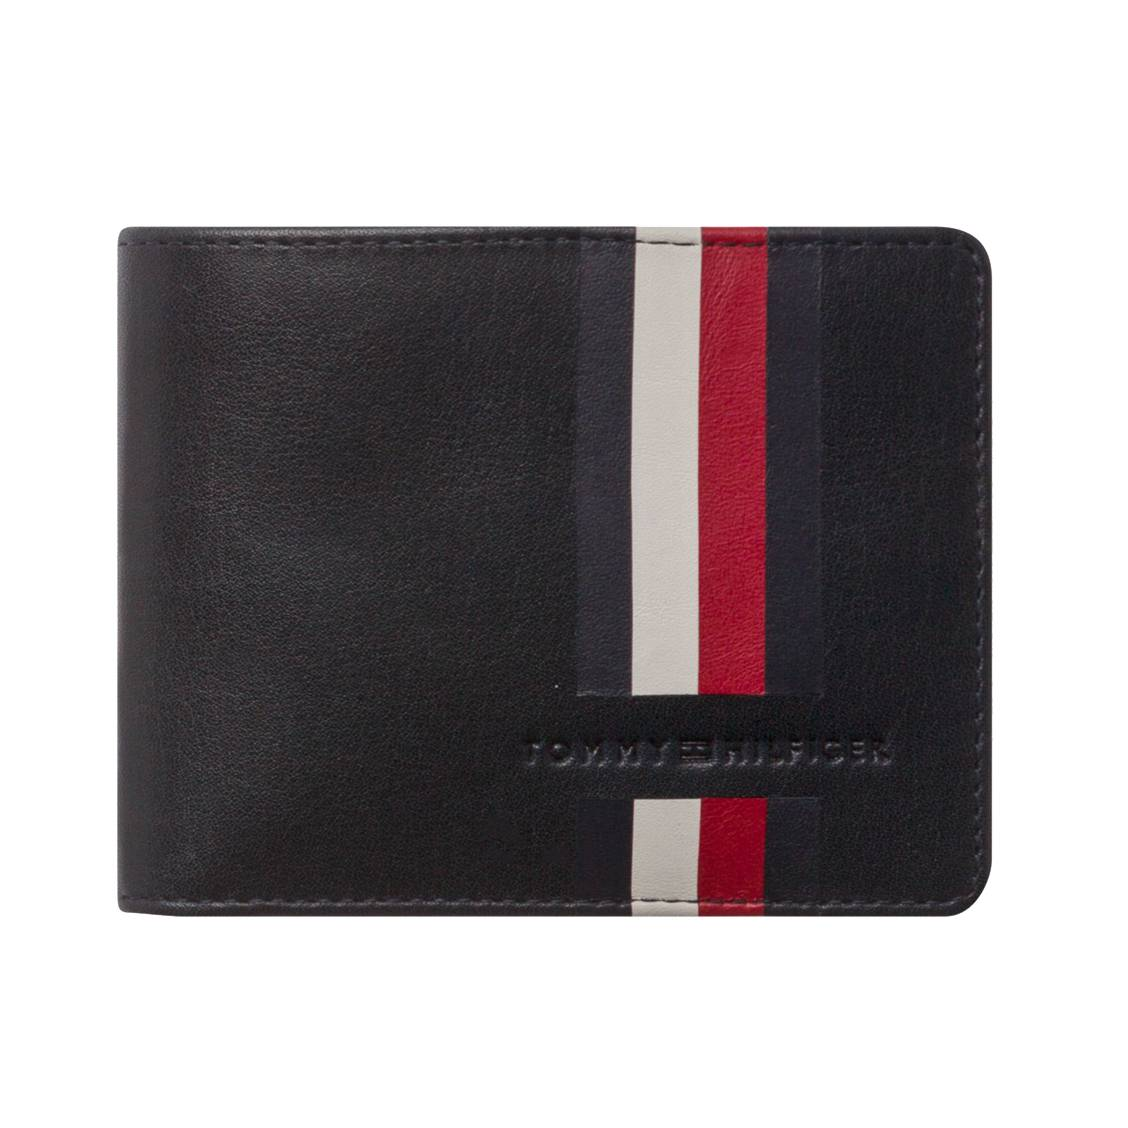 Tommy hilfiger accessoires - petite maroquinerie